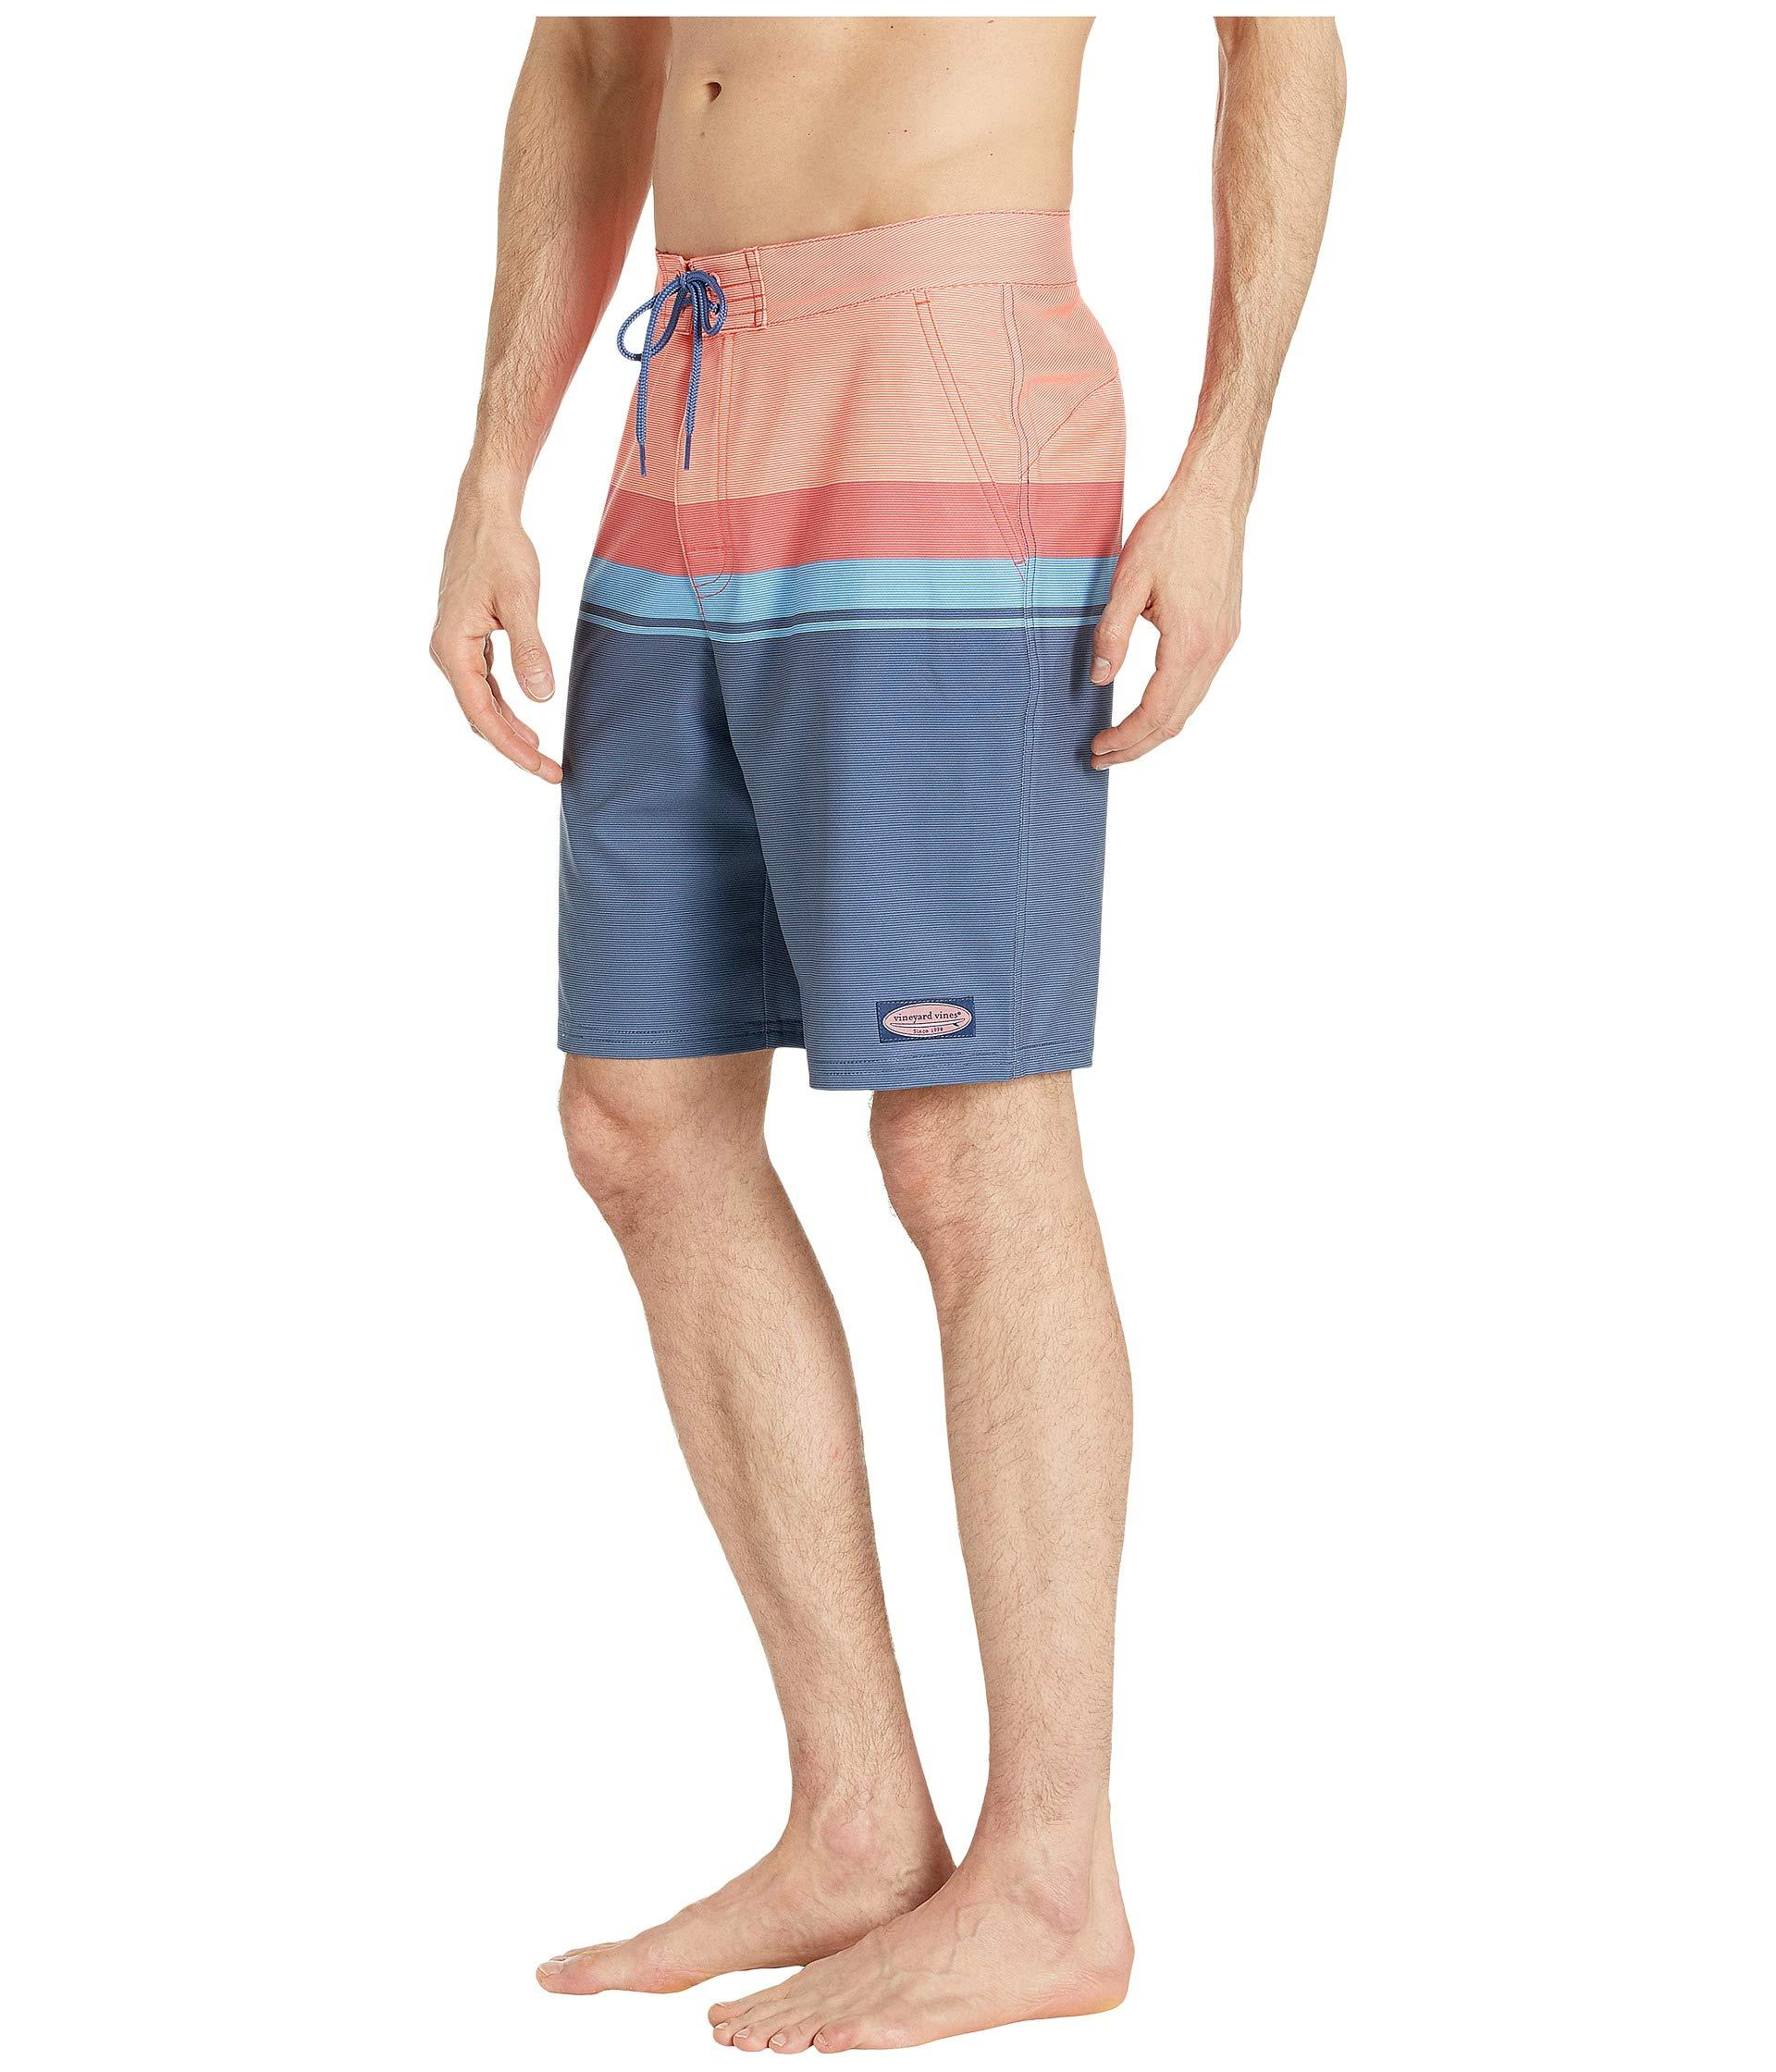 638a7ca597 Vineyard Vines Striped Boardshorts (mai Tai) Men's Swimwear in Blue for Men  - Lyst